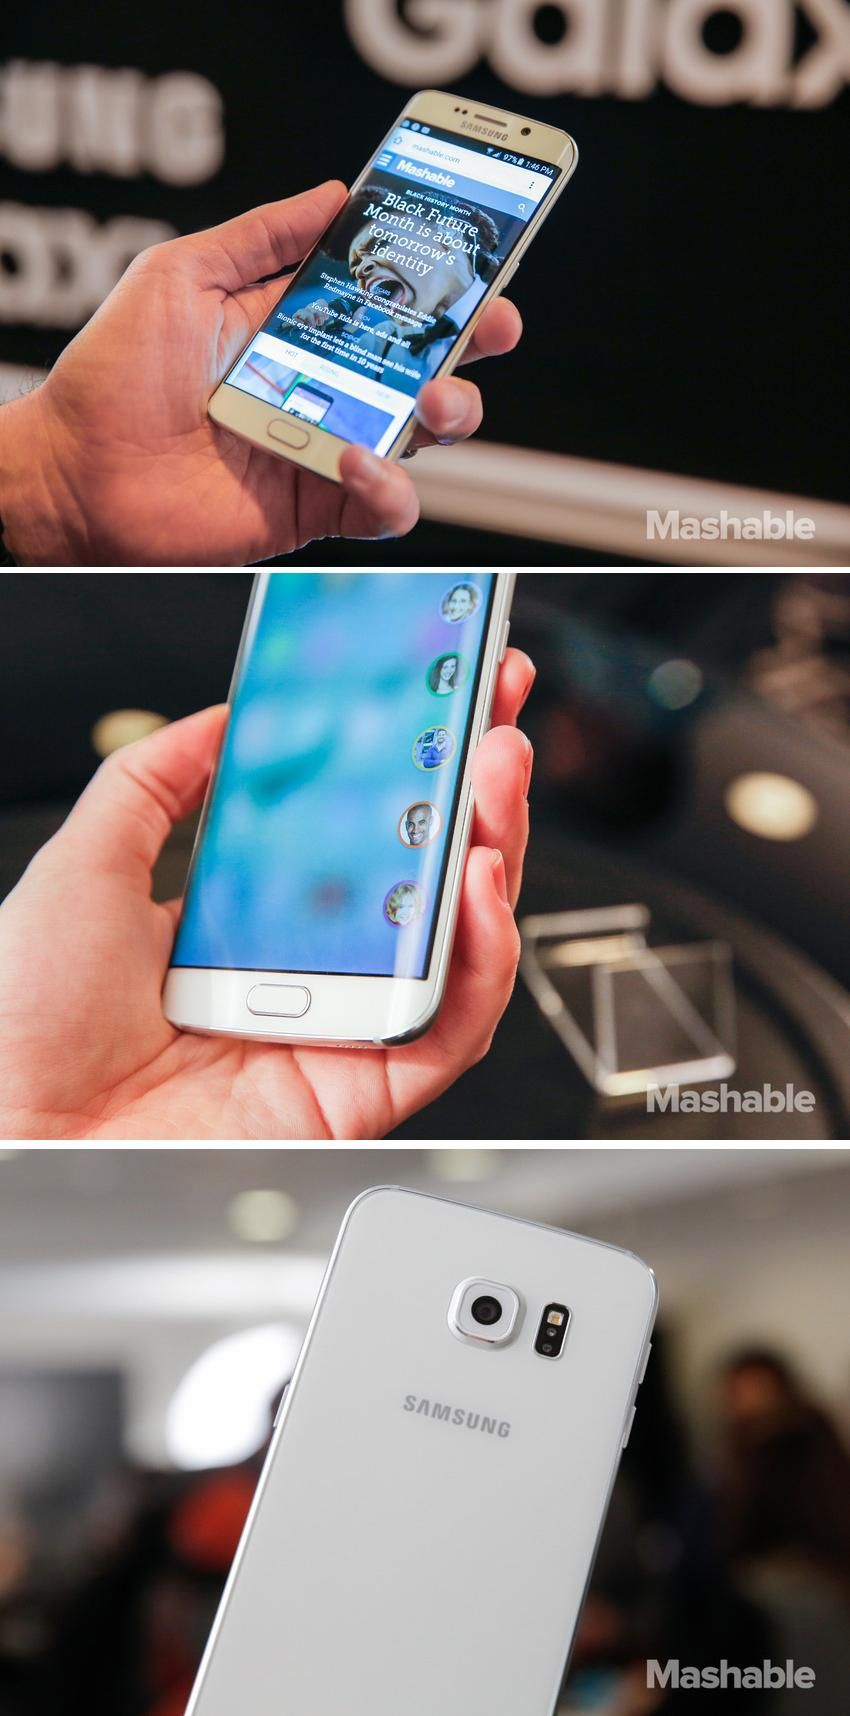 Galaxy s6 capacitive buttons the android soul - Samsung Has Unveiled Its New Flagship Smartphones The Galaxy S6 And Galaxy S6 Edge